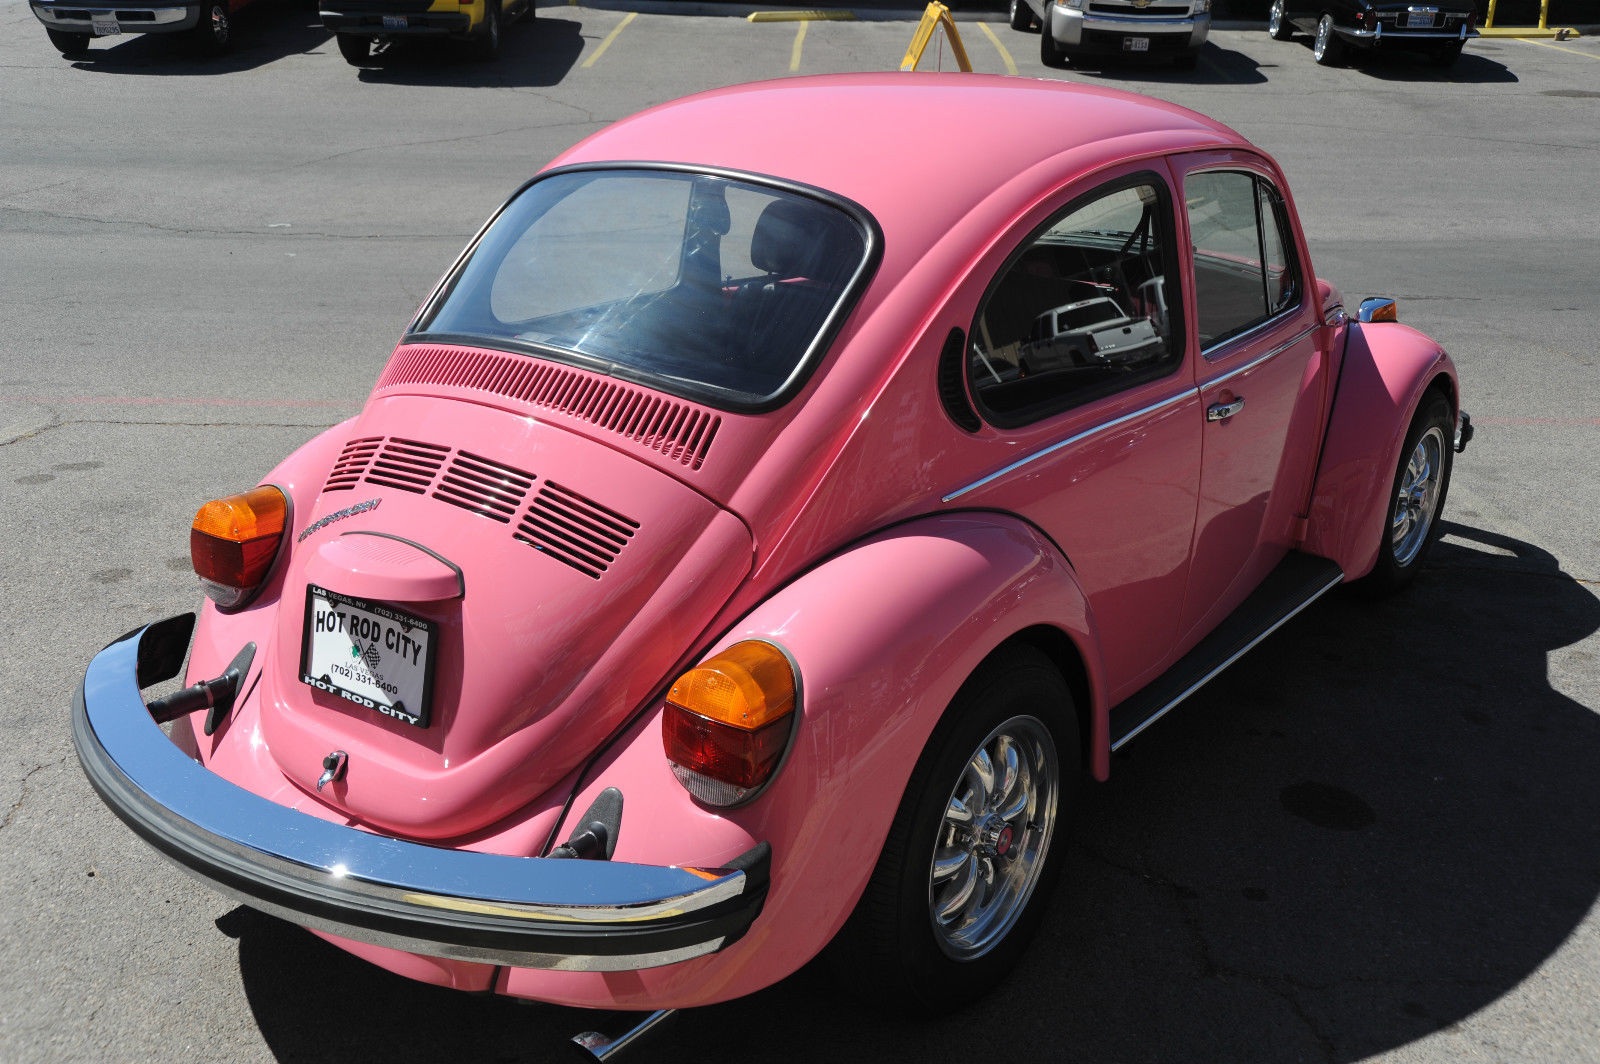 drive unique review pinkbeetle compact are visiting a volkswagen market and autonation the highly if recommend for beetle in your something re local test pink dealer looking we you vehicle